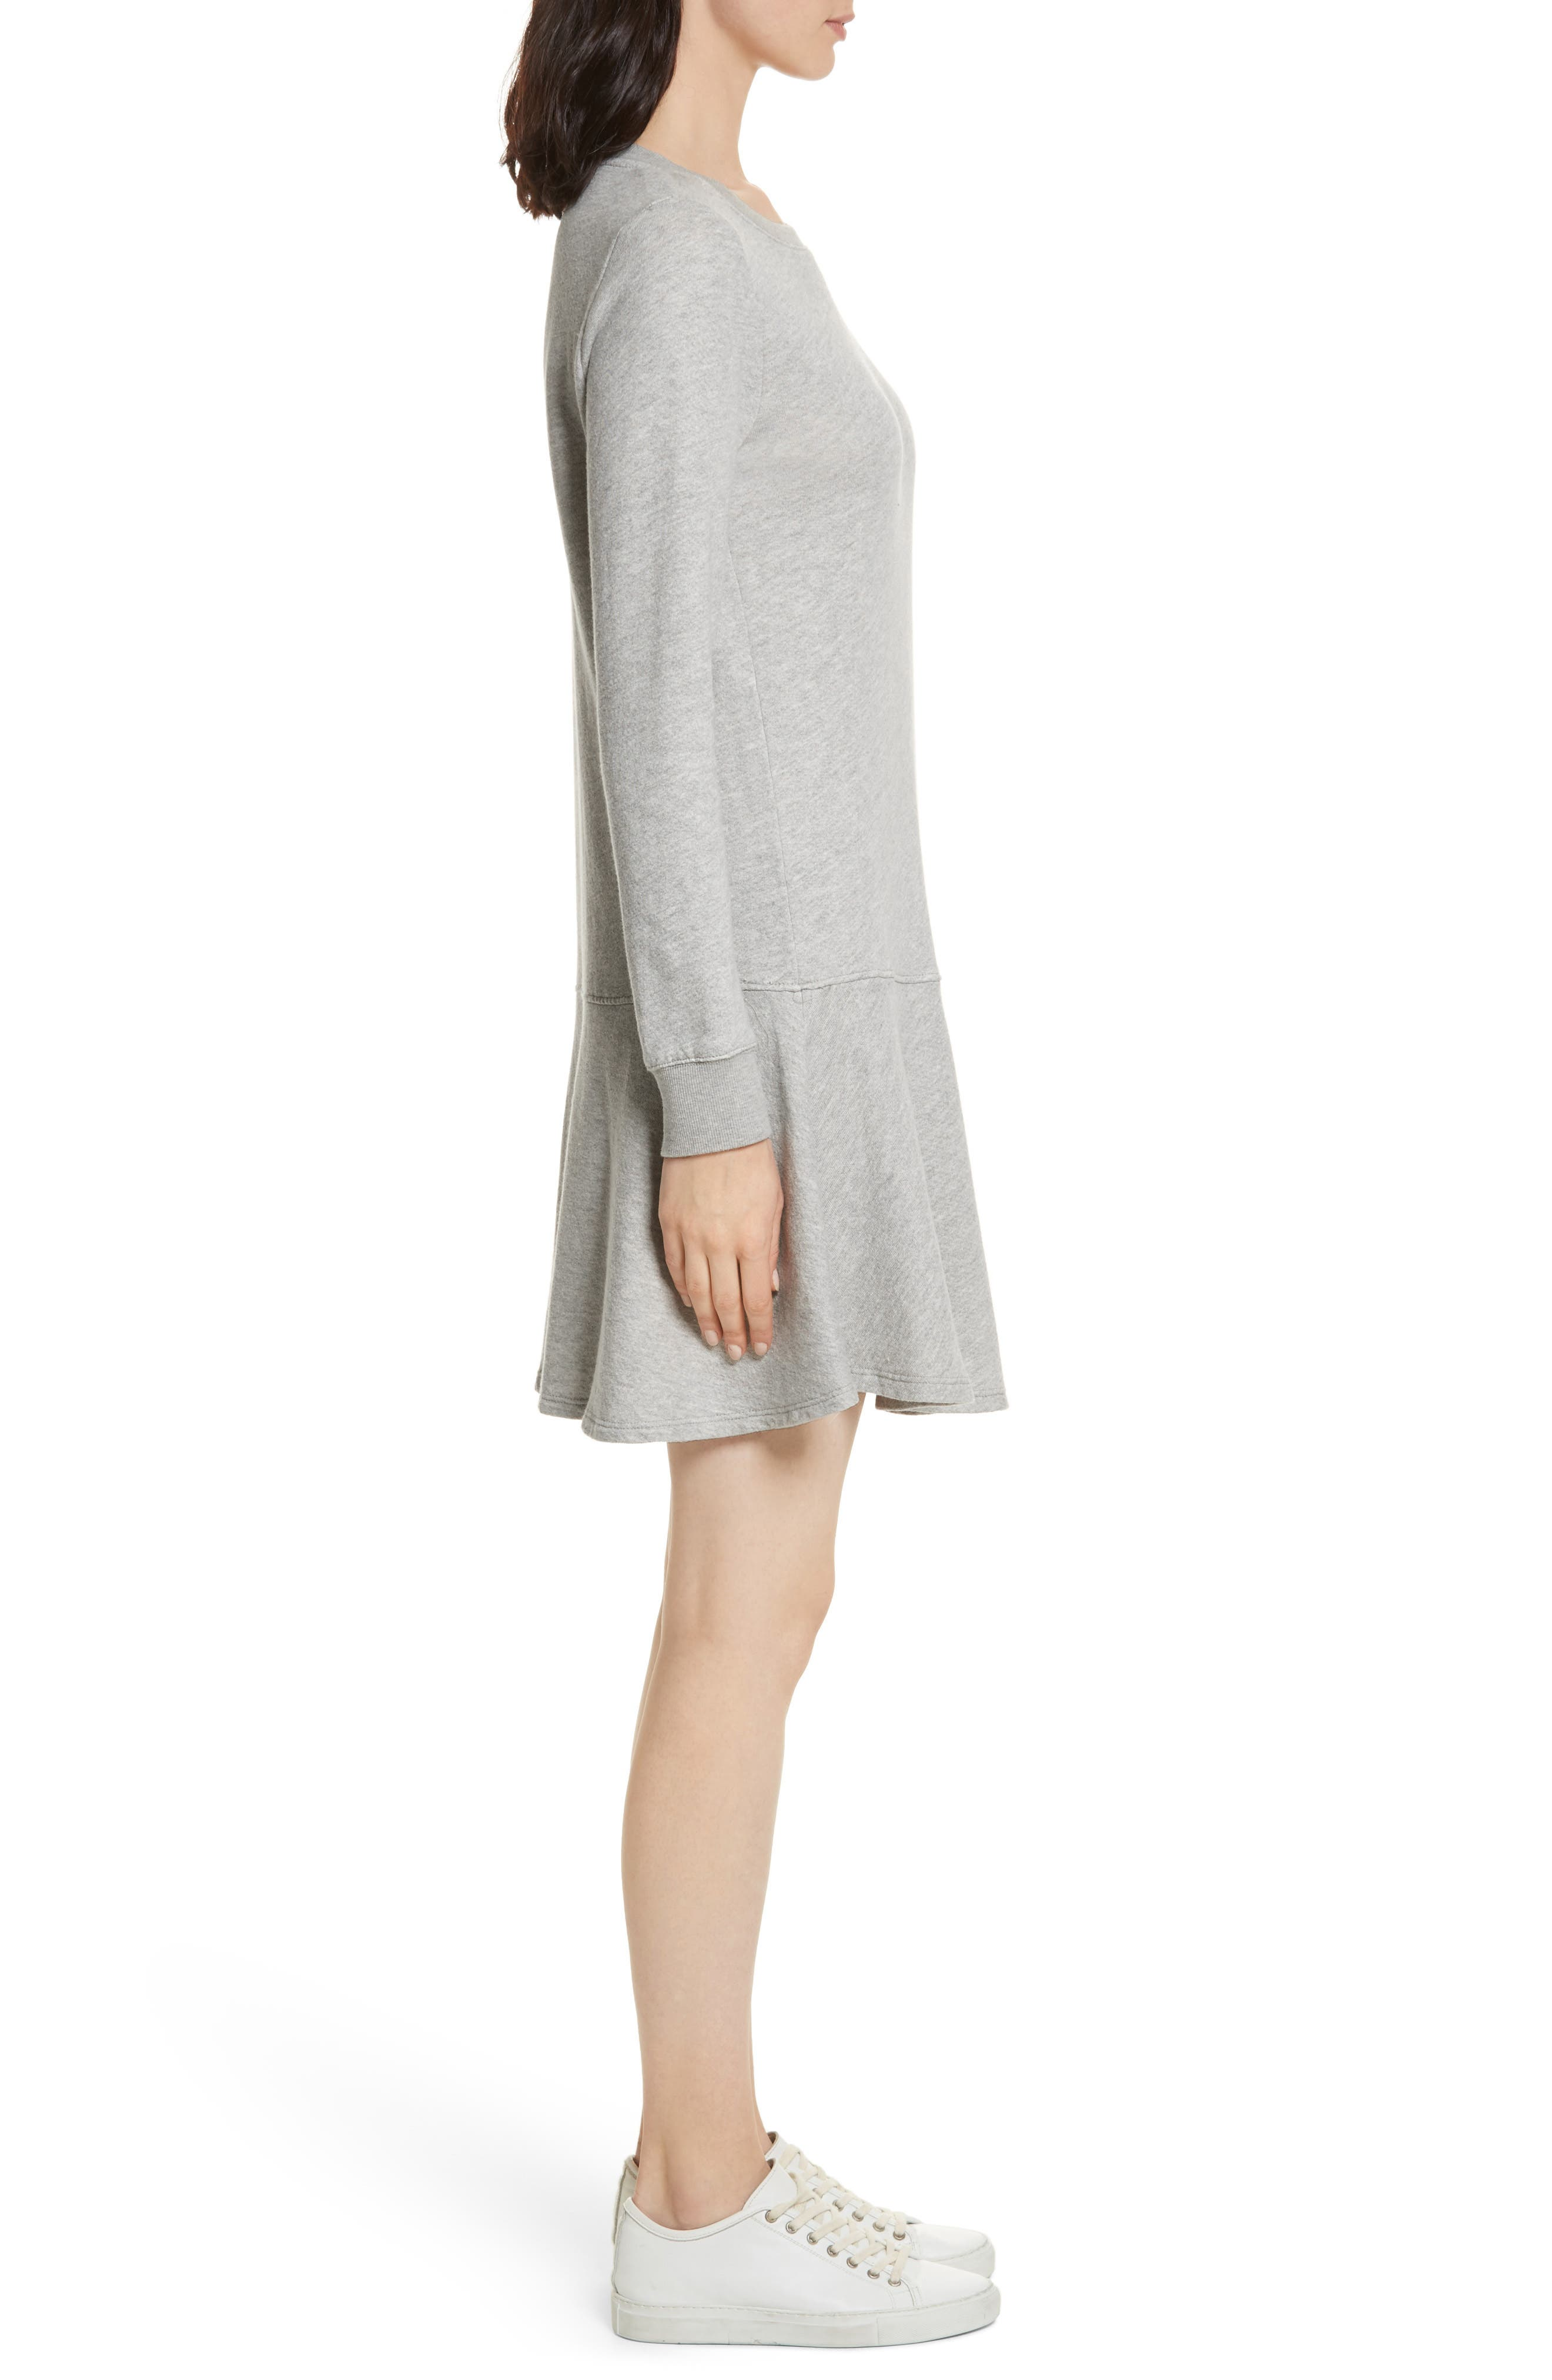 Runna French Terry A-Line Dress,                             Alternate thumbnail 3, color,                             033